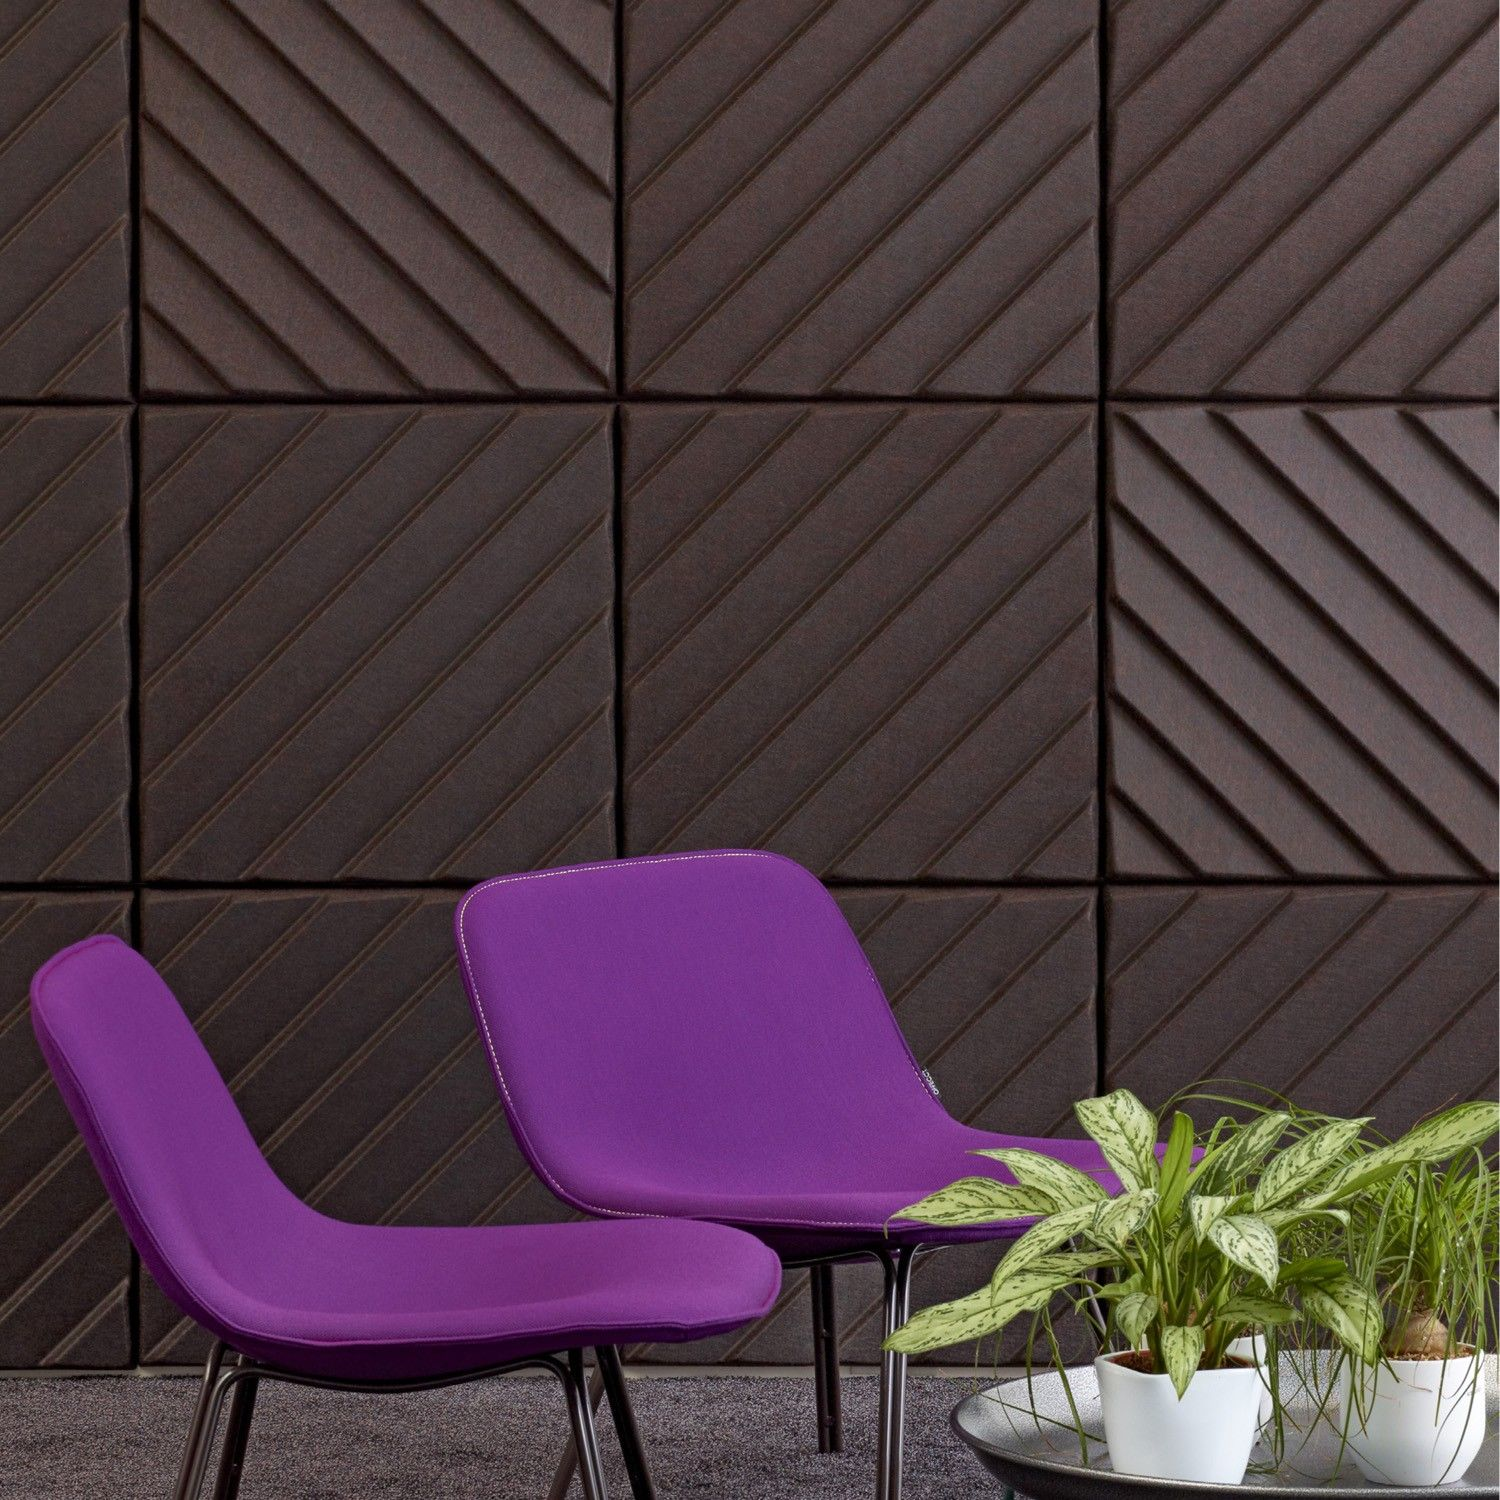 Soundwave Stripes Decorative Acoustic Wall Panels are a flexible solution  suitable to most decors in a wide choice of